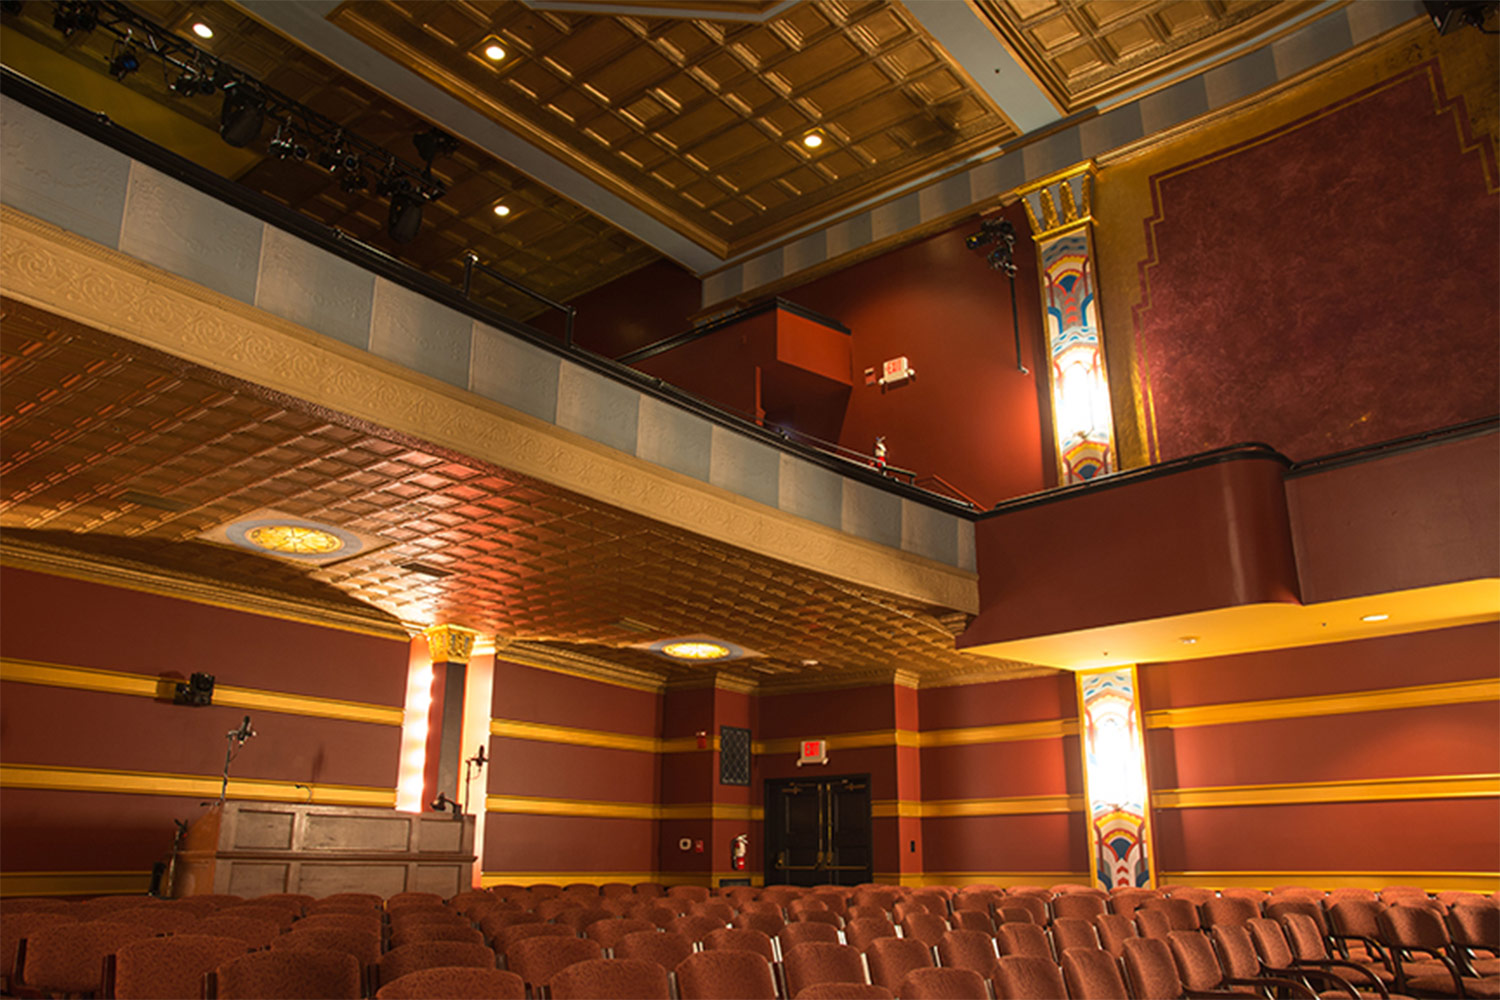 The Avalon Foundation, which runs the Avalon Theatre, secured the services of WSDG during a larger overall renovation initiative to update the theater's acoustics, production lighting, and audiovisual capabilities. Interior side and back.